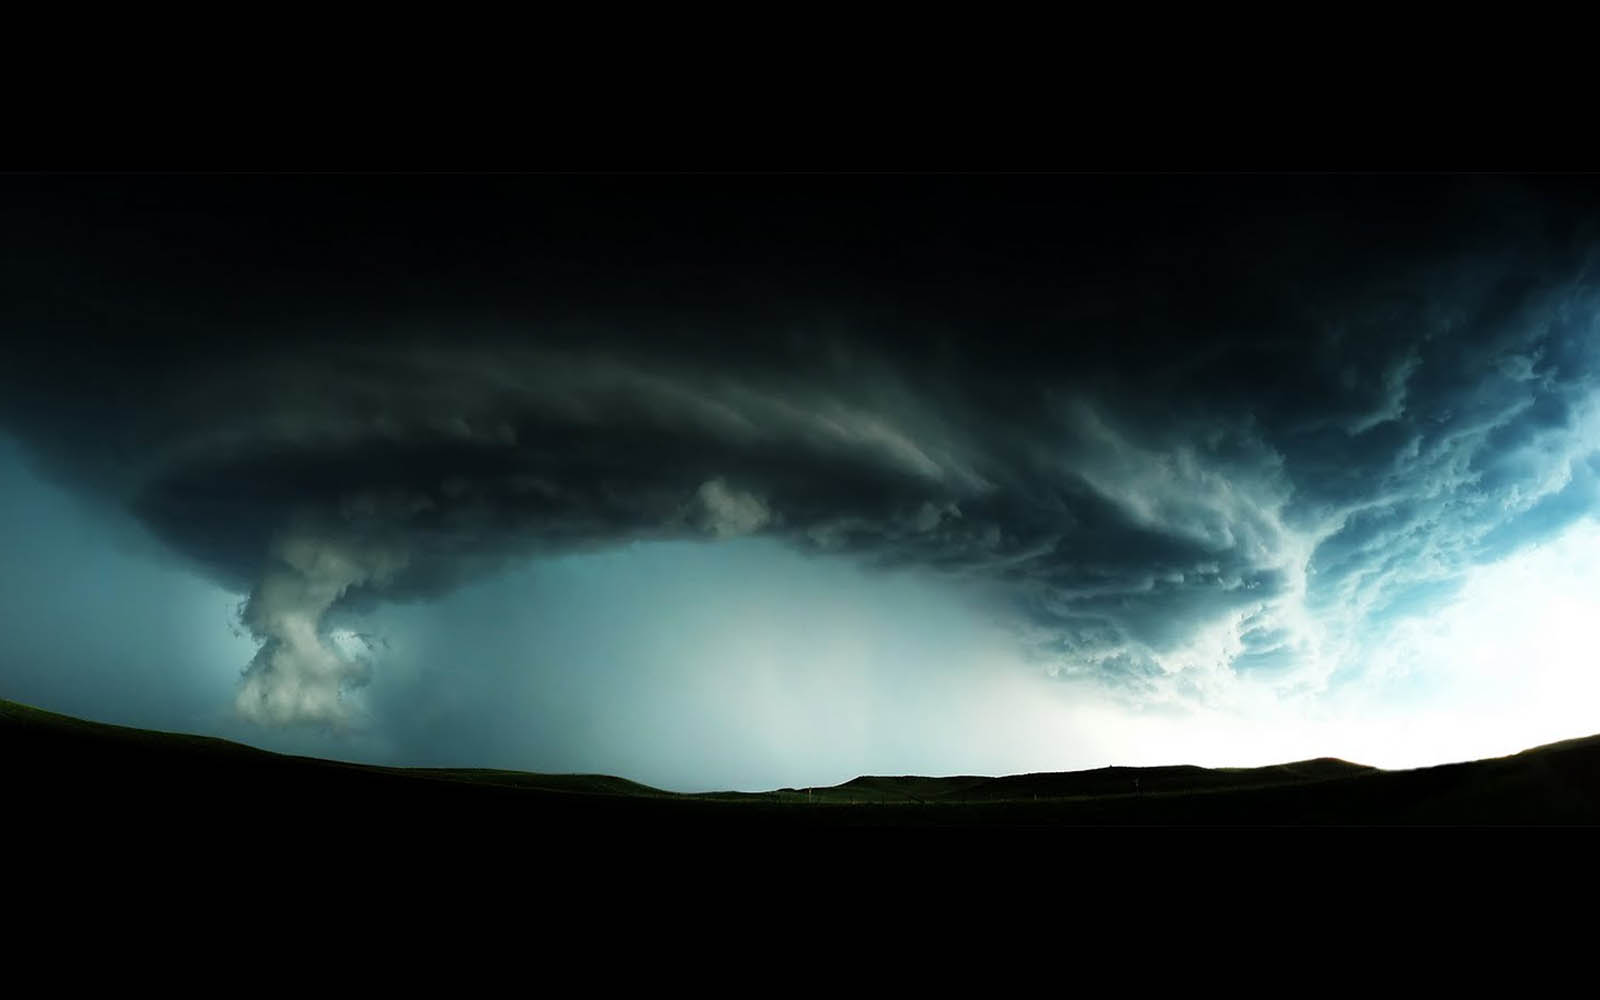 Tag Tornado Photos Wallpapers Backgrounds Picturesand Images for 1600x1000